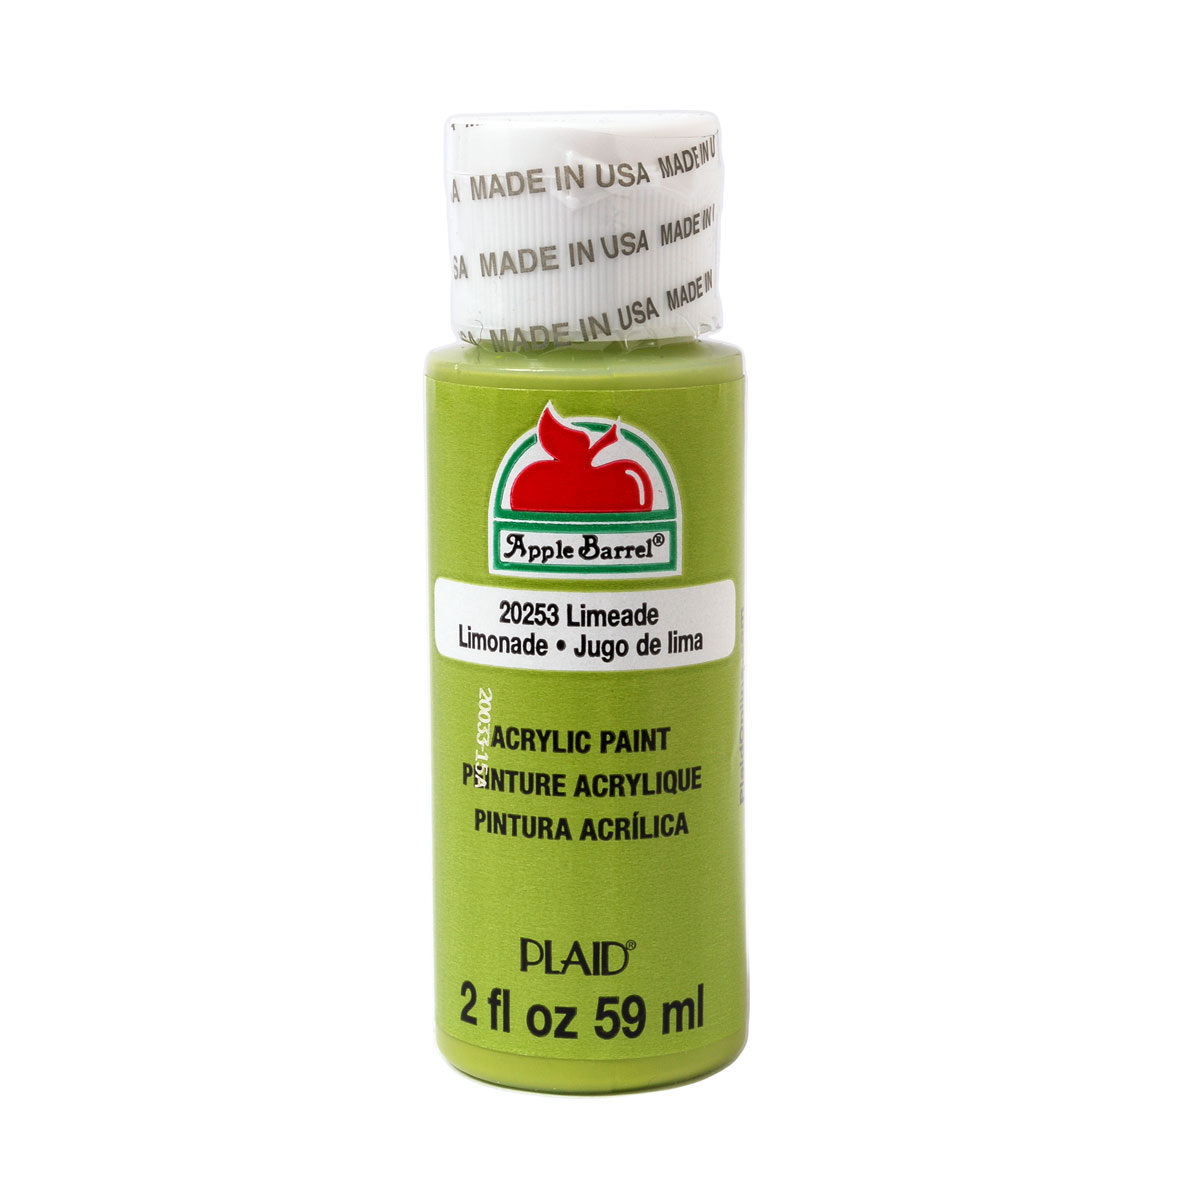 Apple Barrel ® Colors - Limeade, 2 oz. - 20253